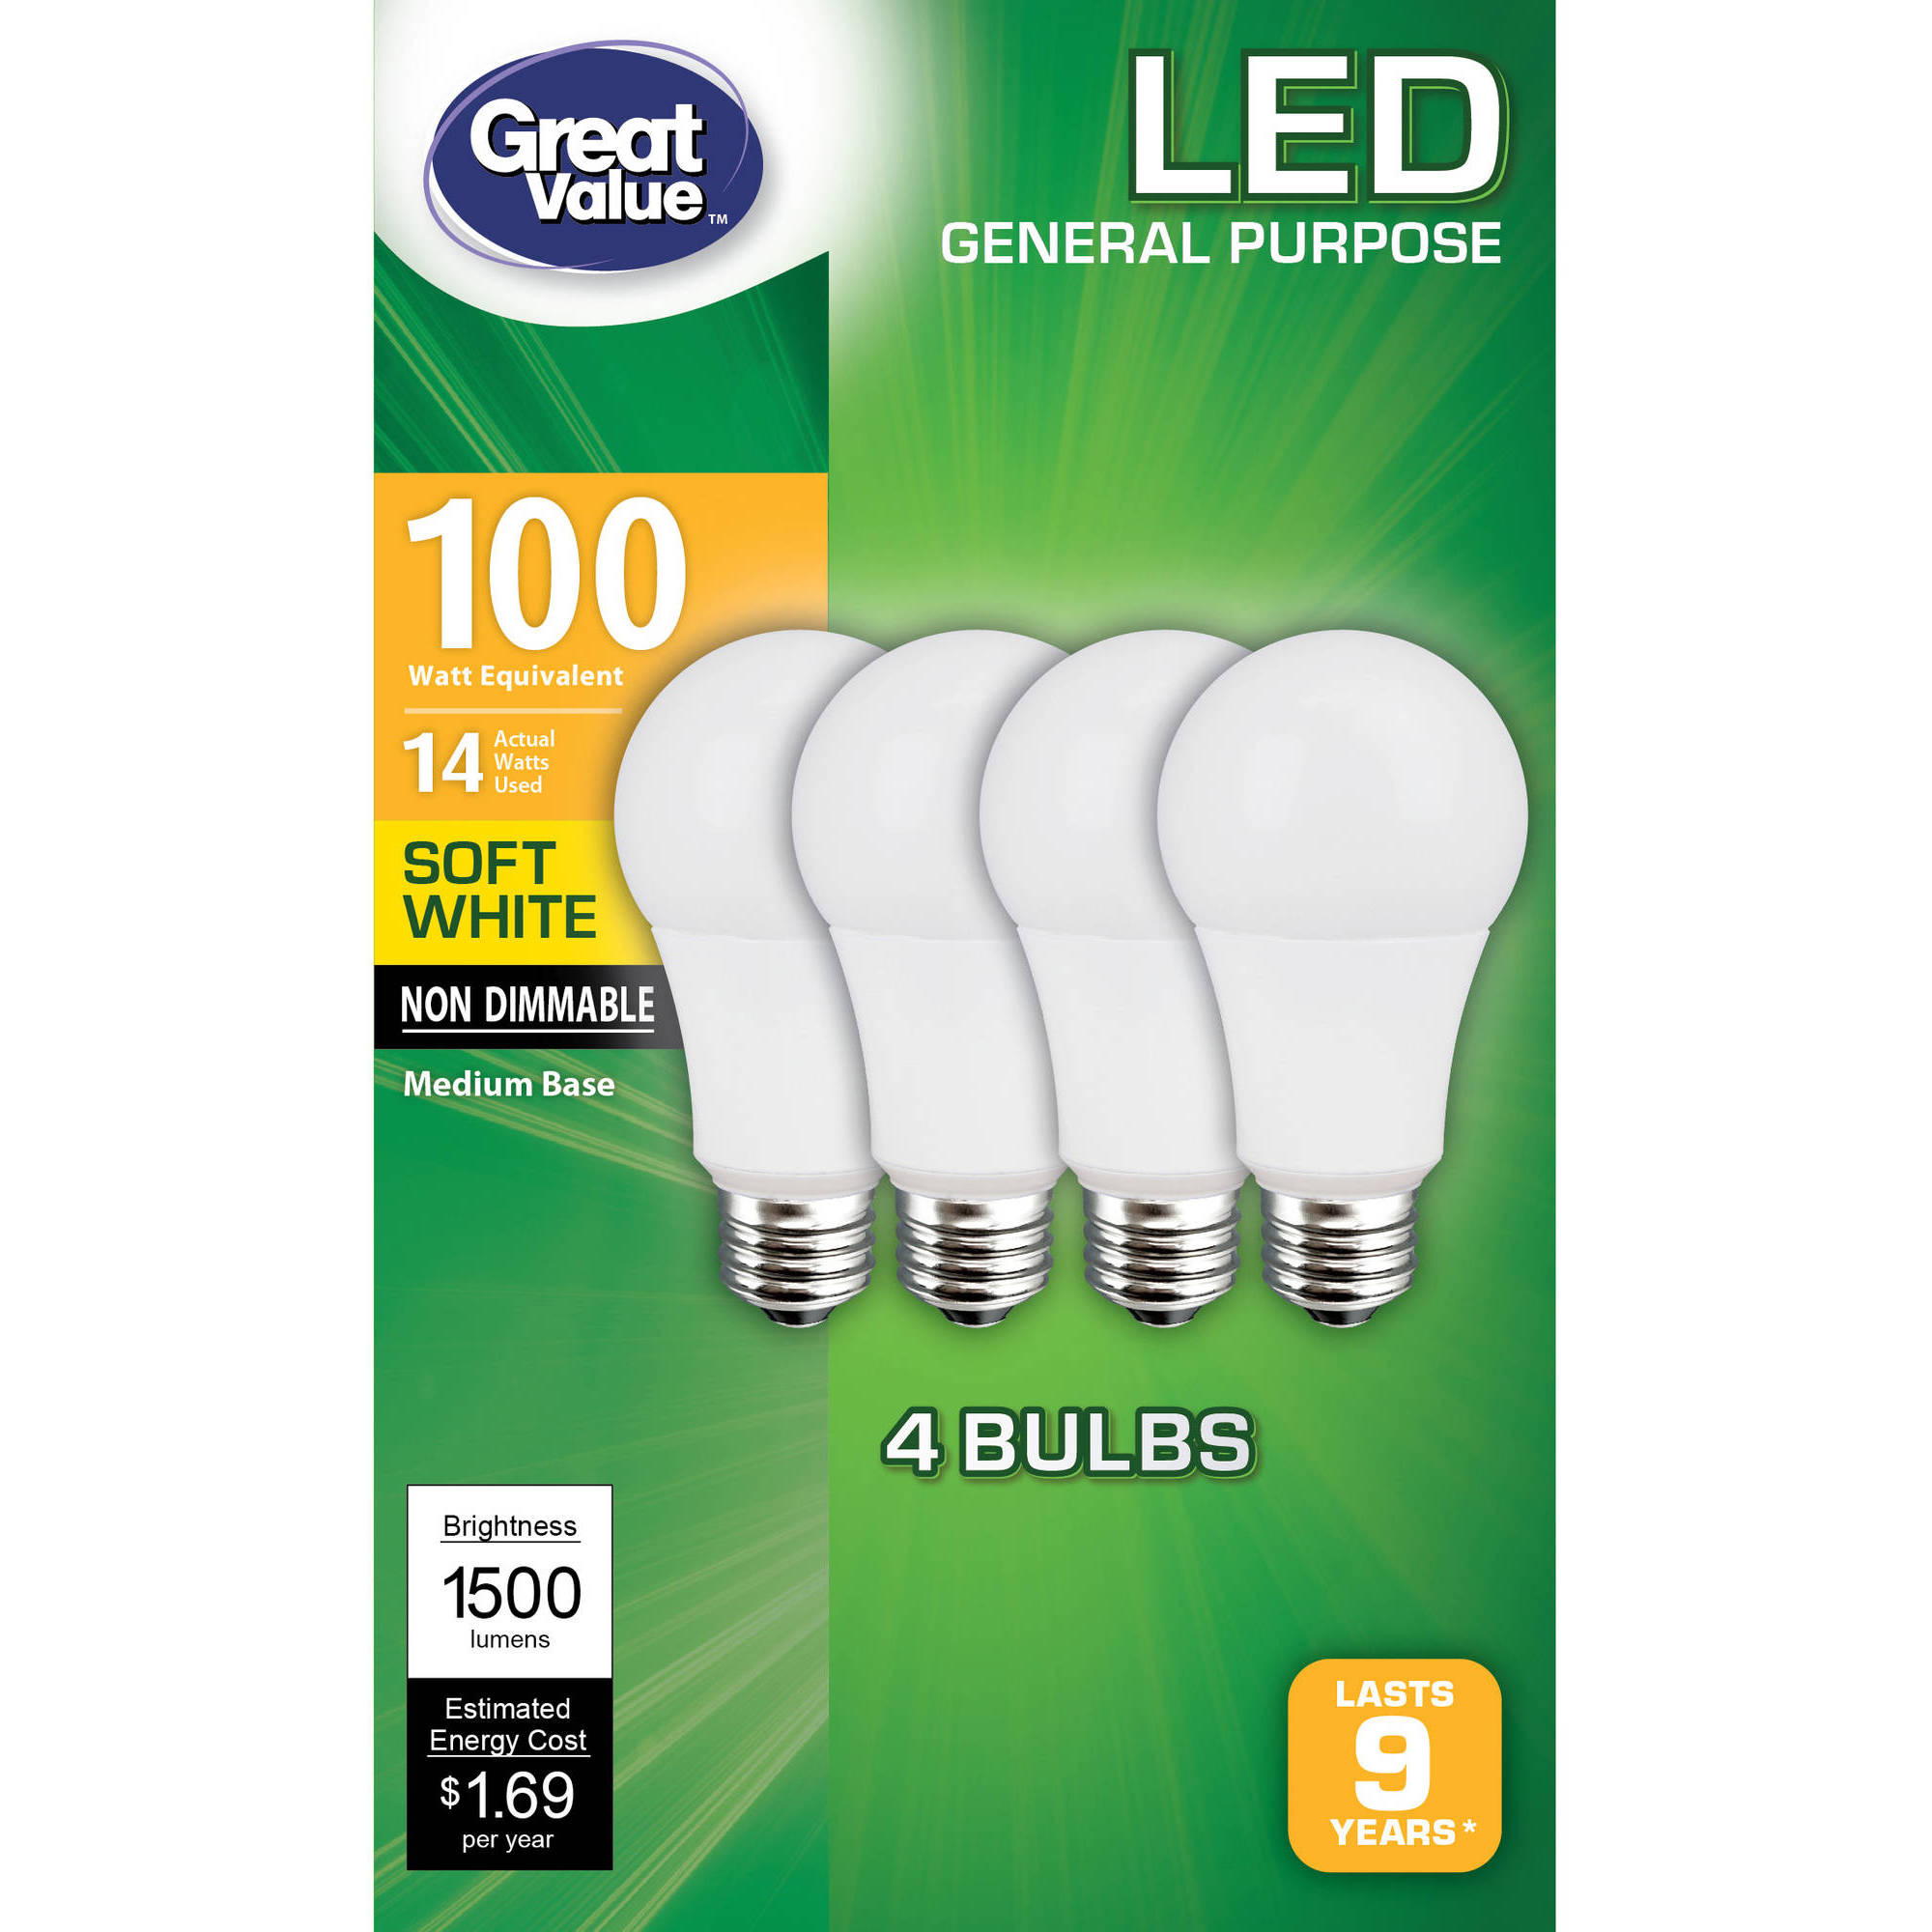 Great Value LED Light Bulbs, 14W (100W Equivalent), Soft White, 4-count